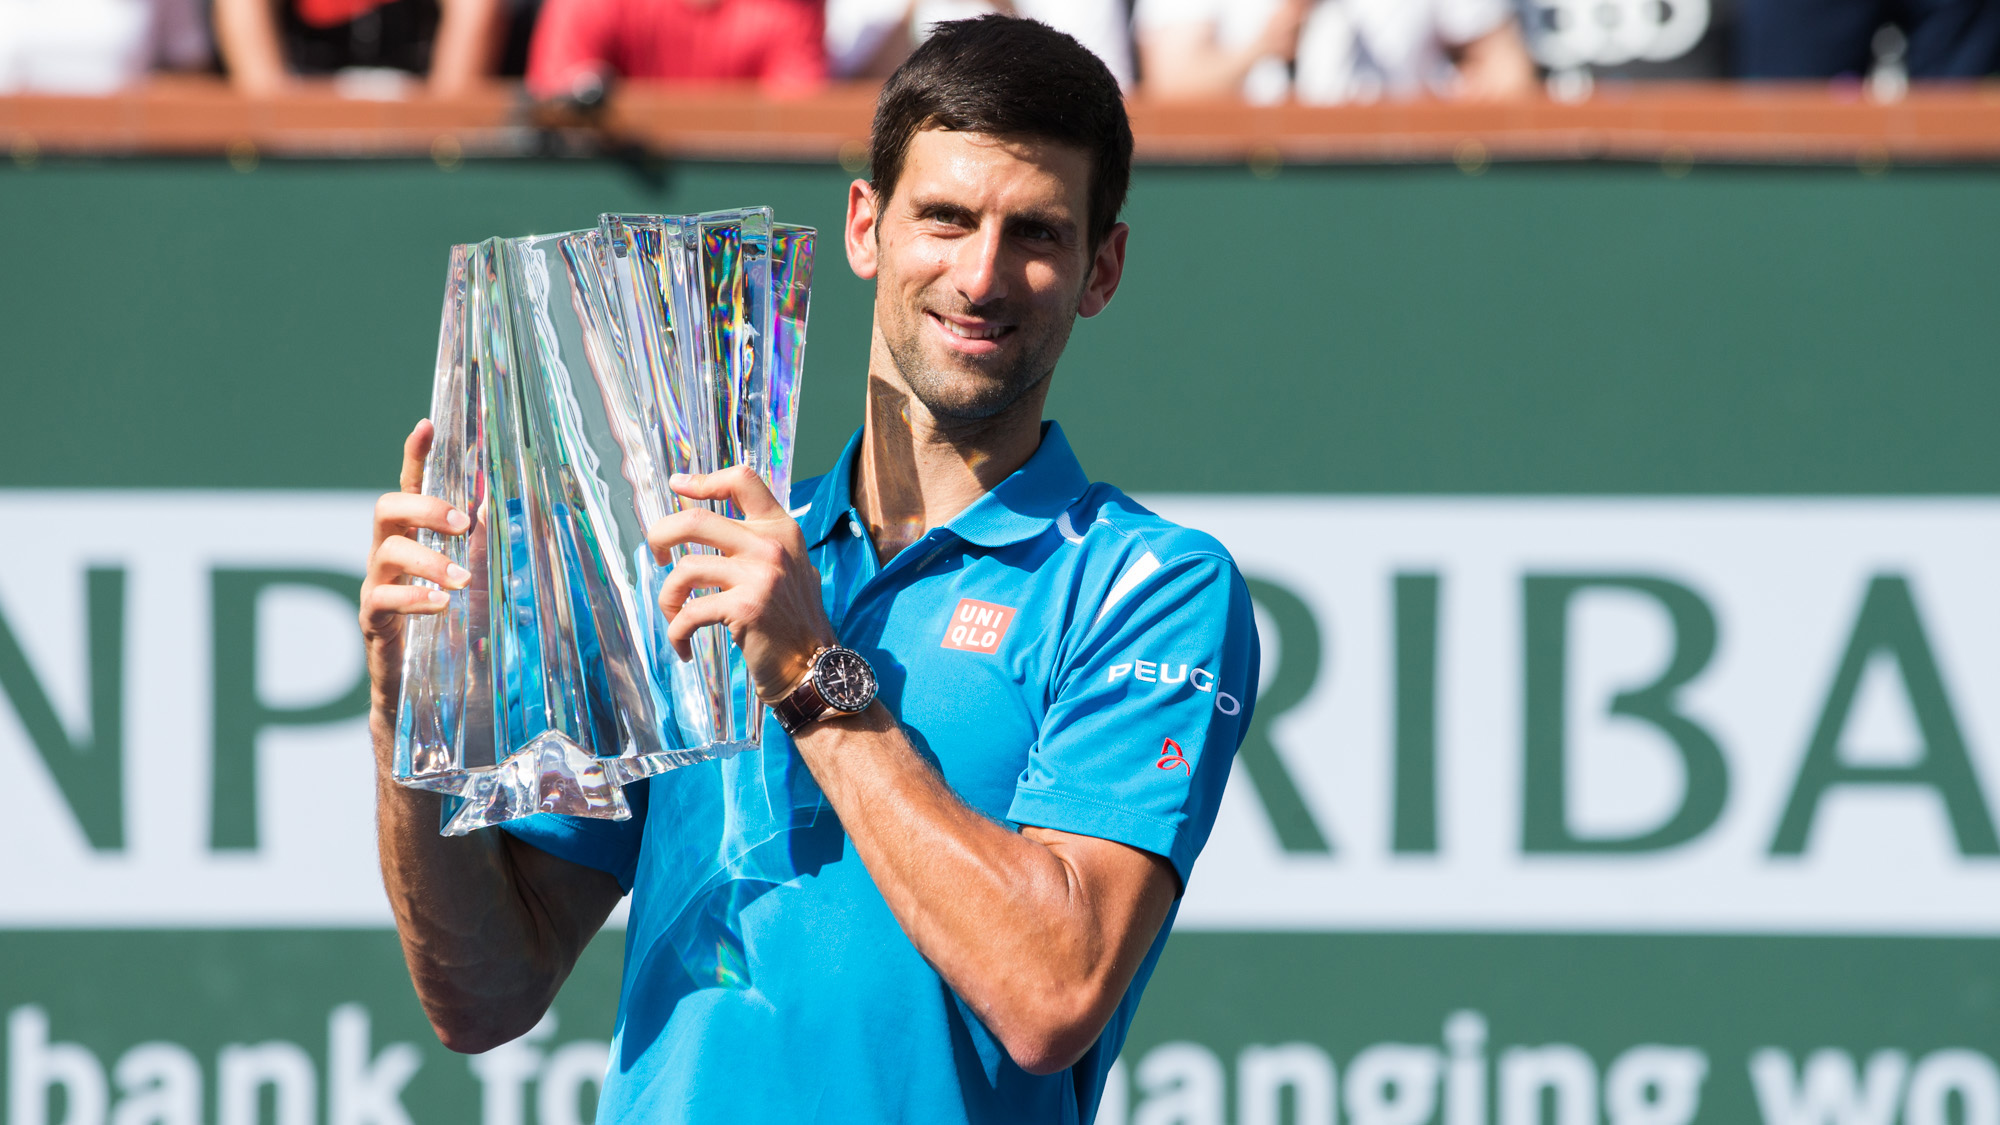 Novak Djokovic poses with his 2016 BNP Paribas Open trophy in Stadium 1 at the Indian Wells Tennis Garden in Indian Wells, California Sunday, March 20, 2016. (Photo by Jared Wickerham/BNP Paribas Open)